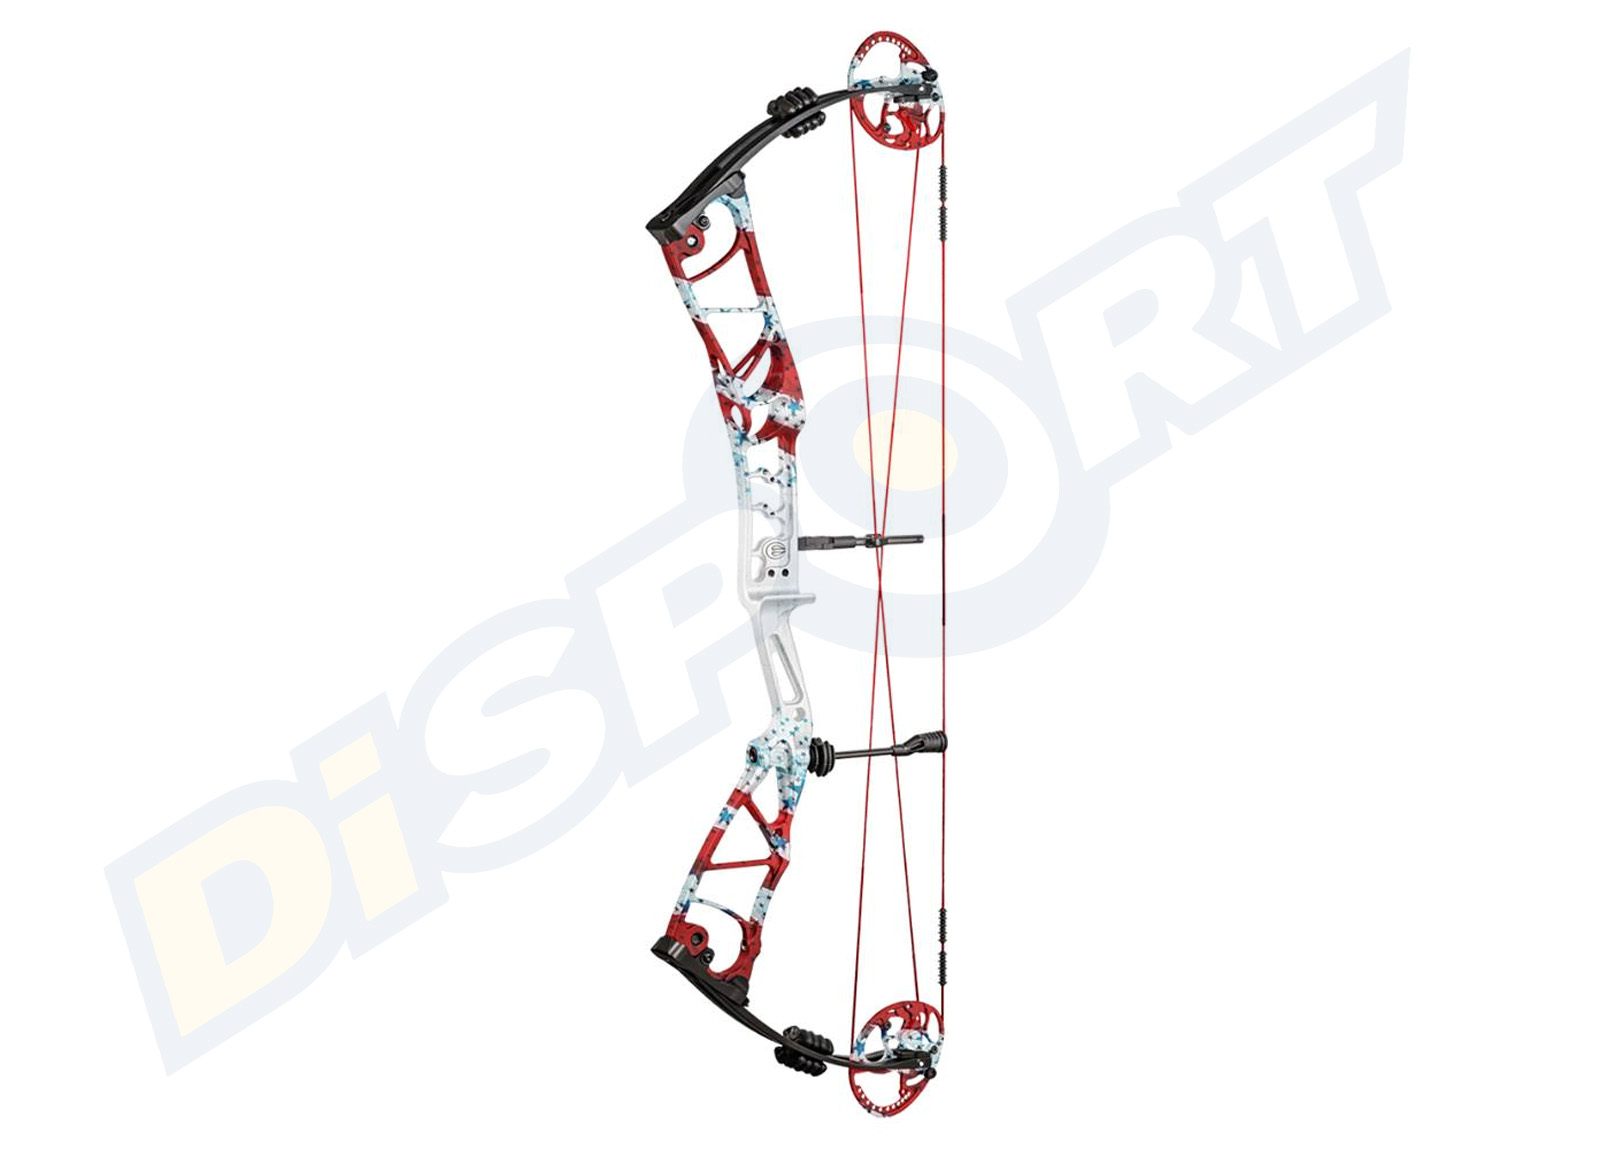 ELITE ARCHERY ARCO COMPOUND ECHELON INDIPENDENCE SERIES